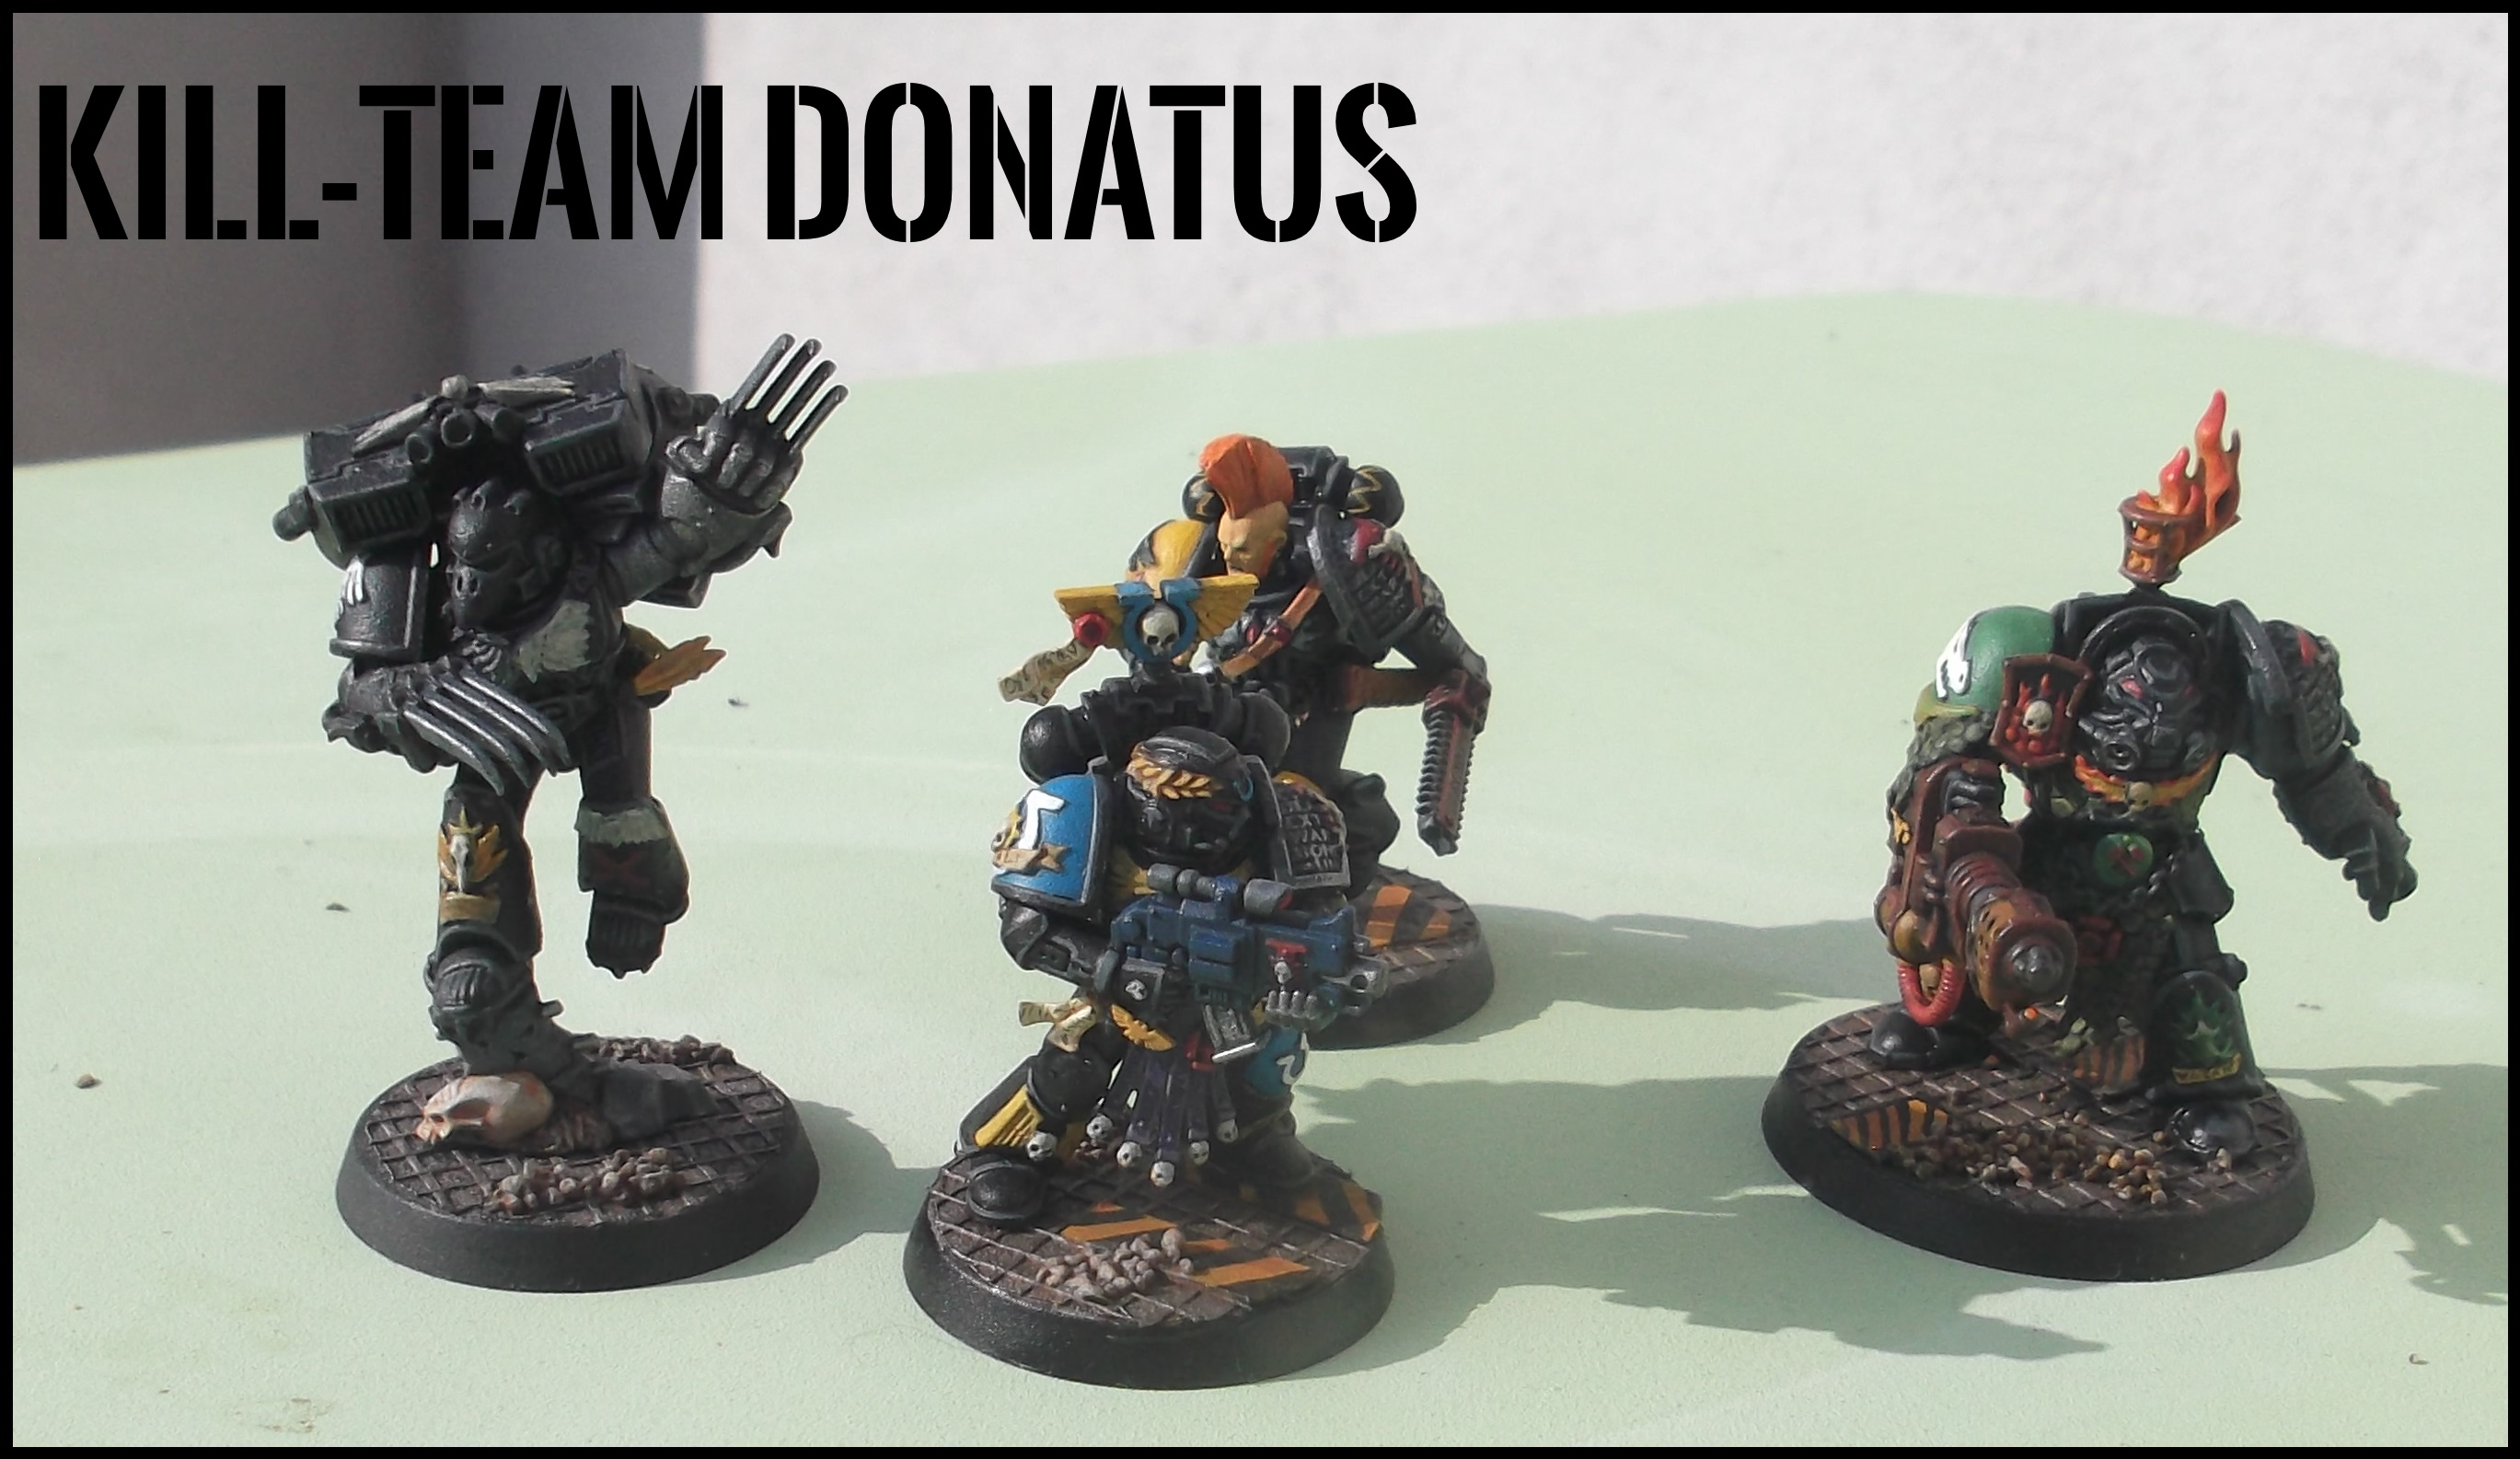 Kill-Team Donatus